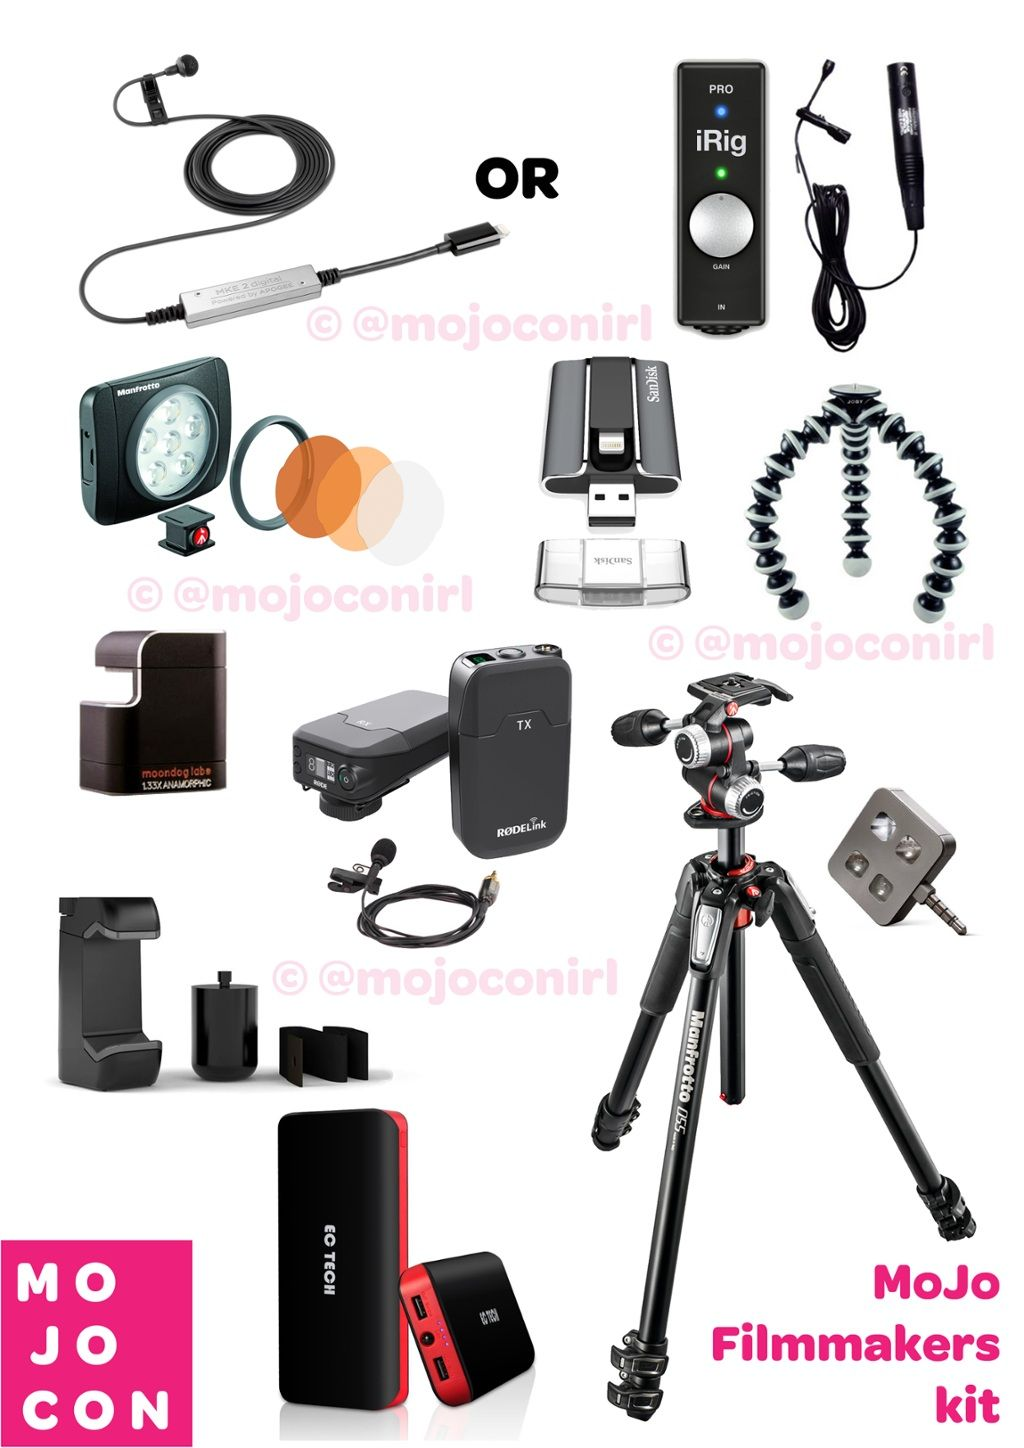 TOUCH cette image: Mojo Interactive Film Makers Kit by